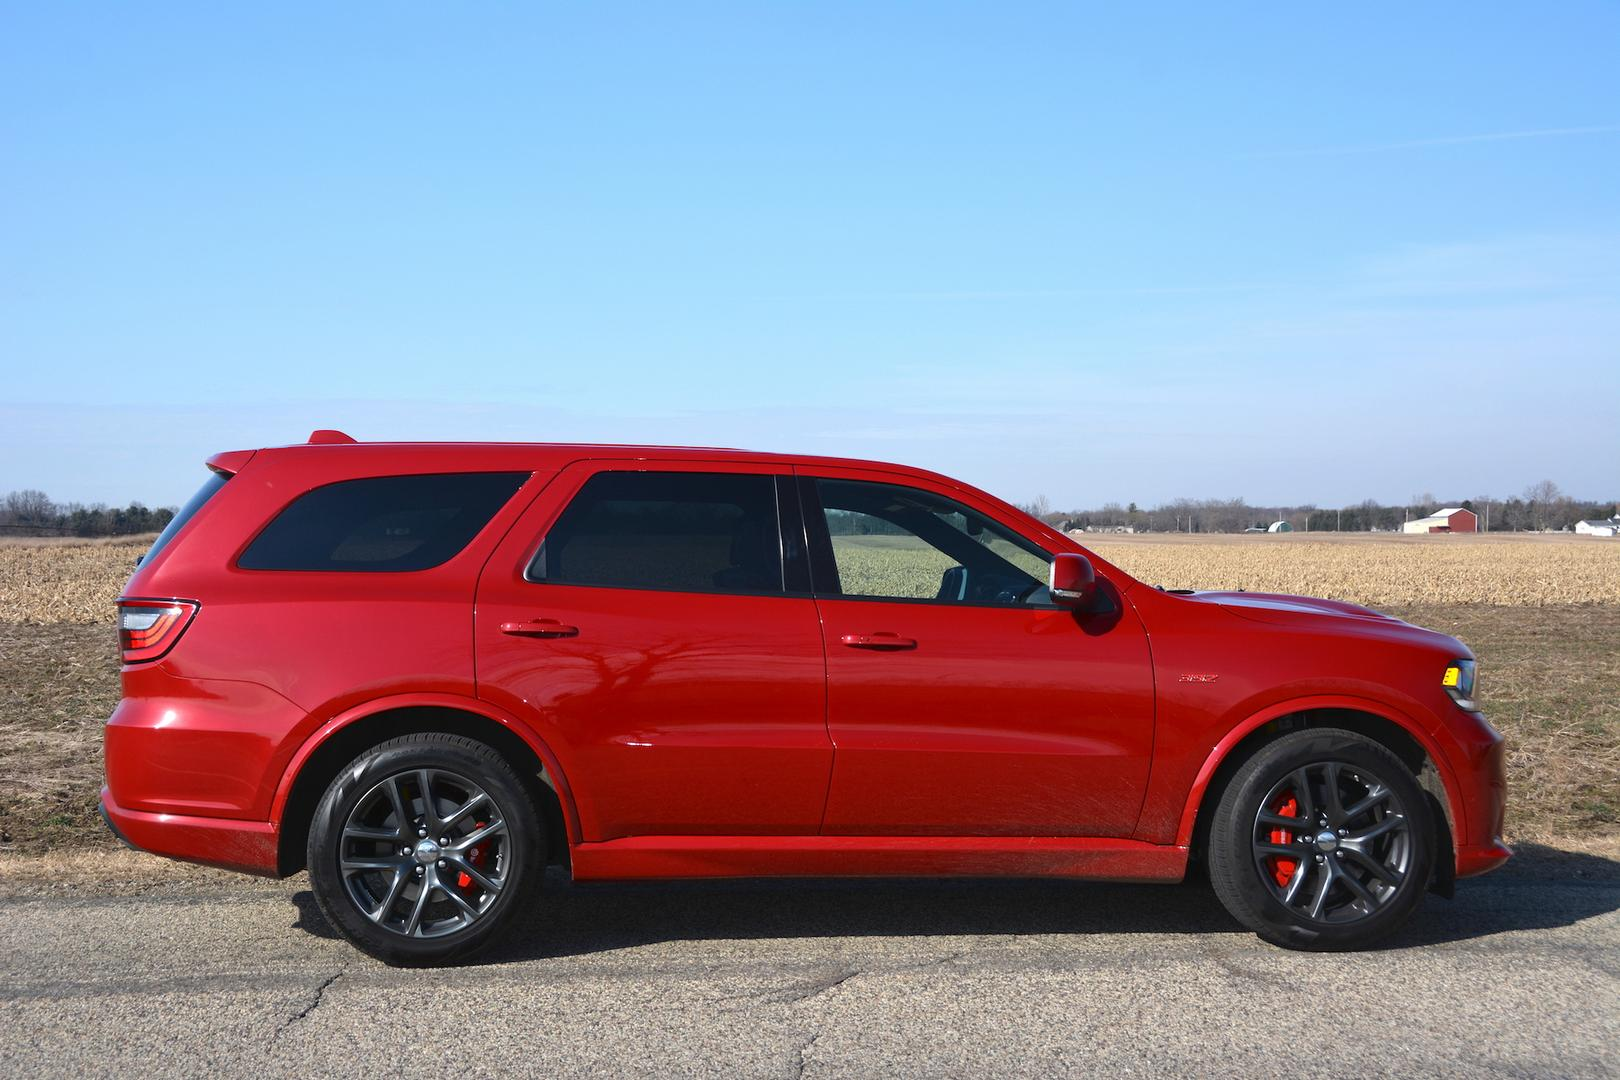 2020 Dodge Durango SRT 392 Side